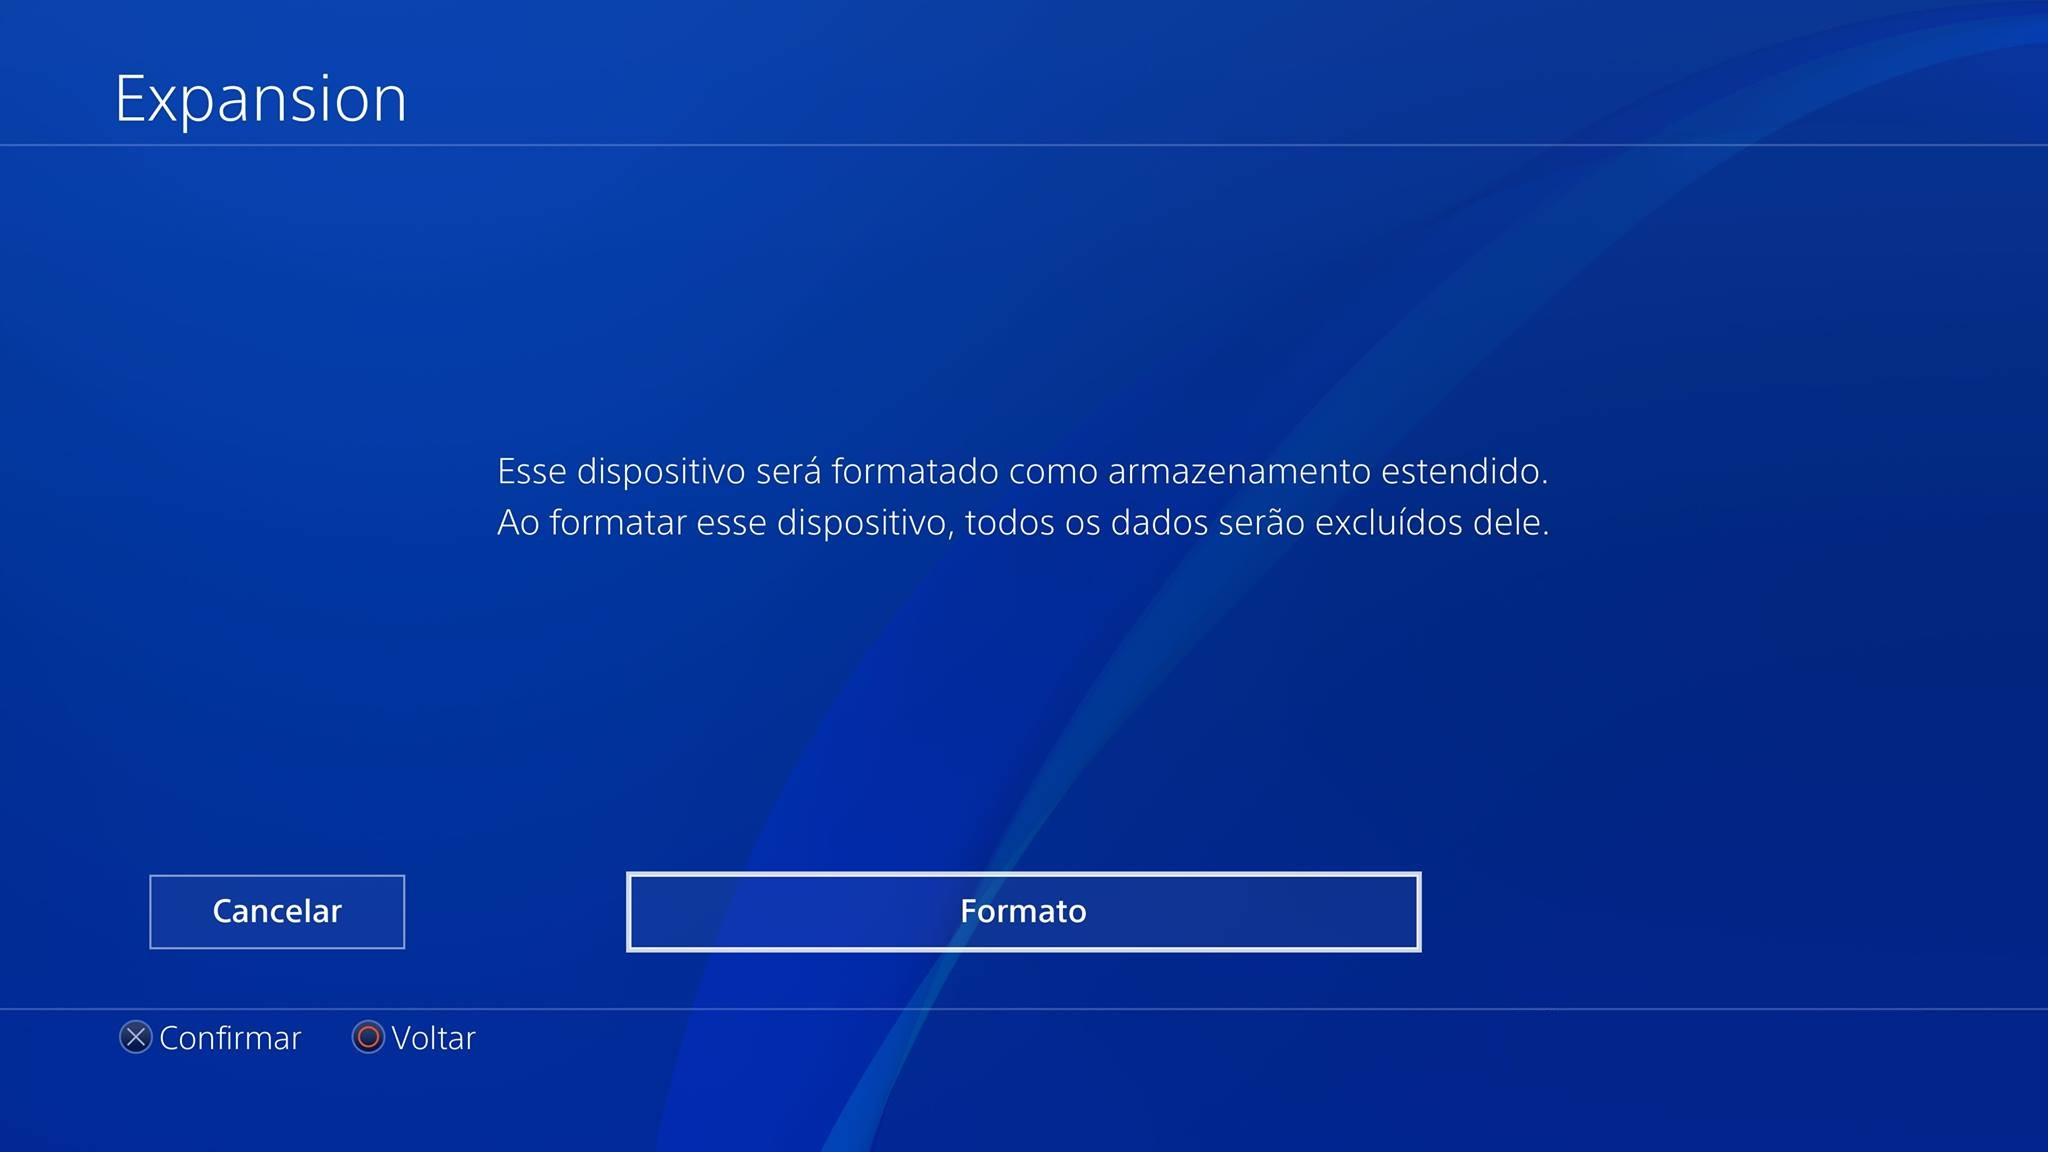 [Tutorial] Como configurar e usar HD externo no PlayStation 4 6